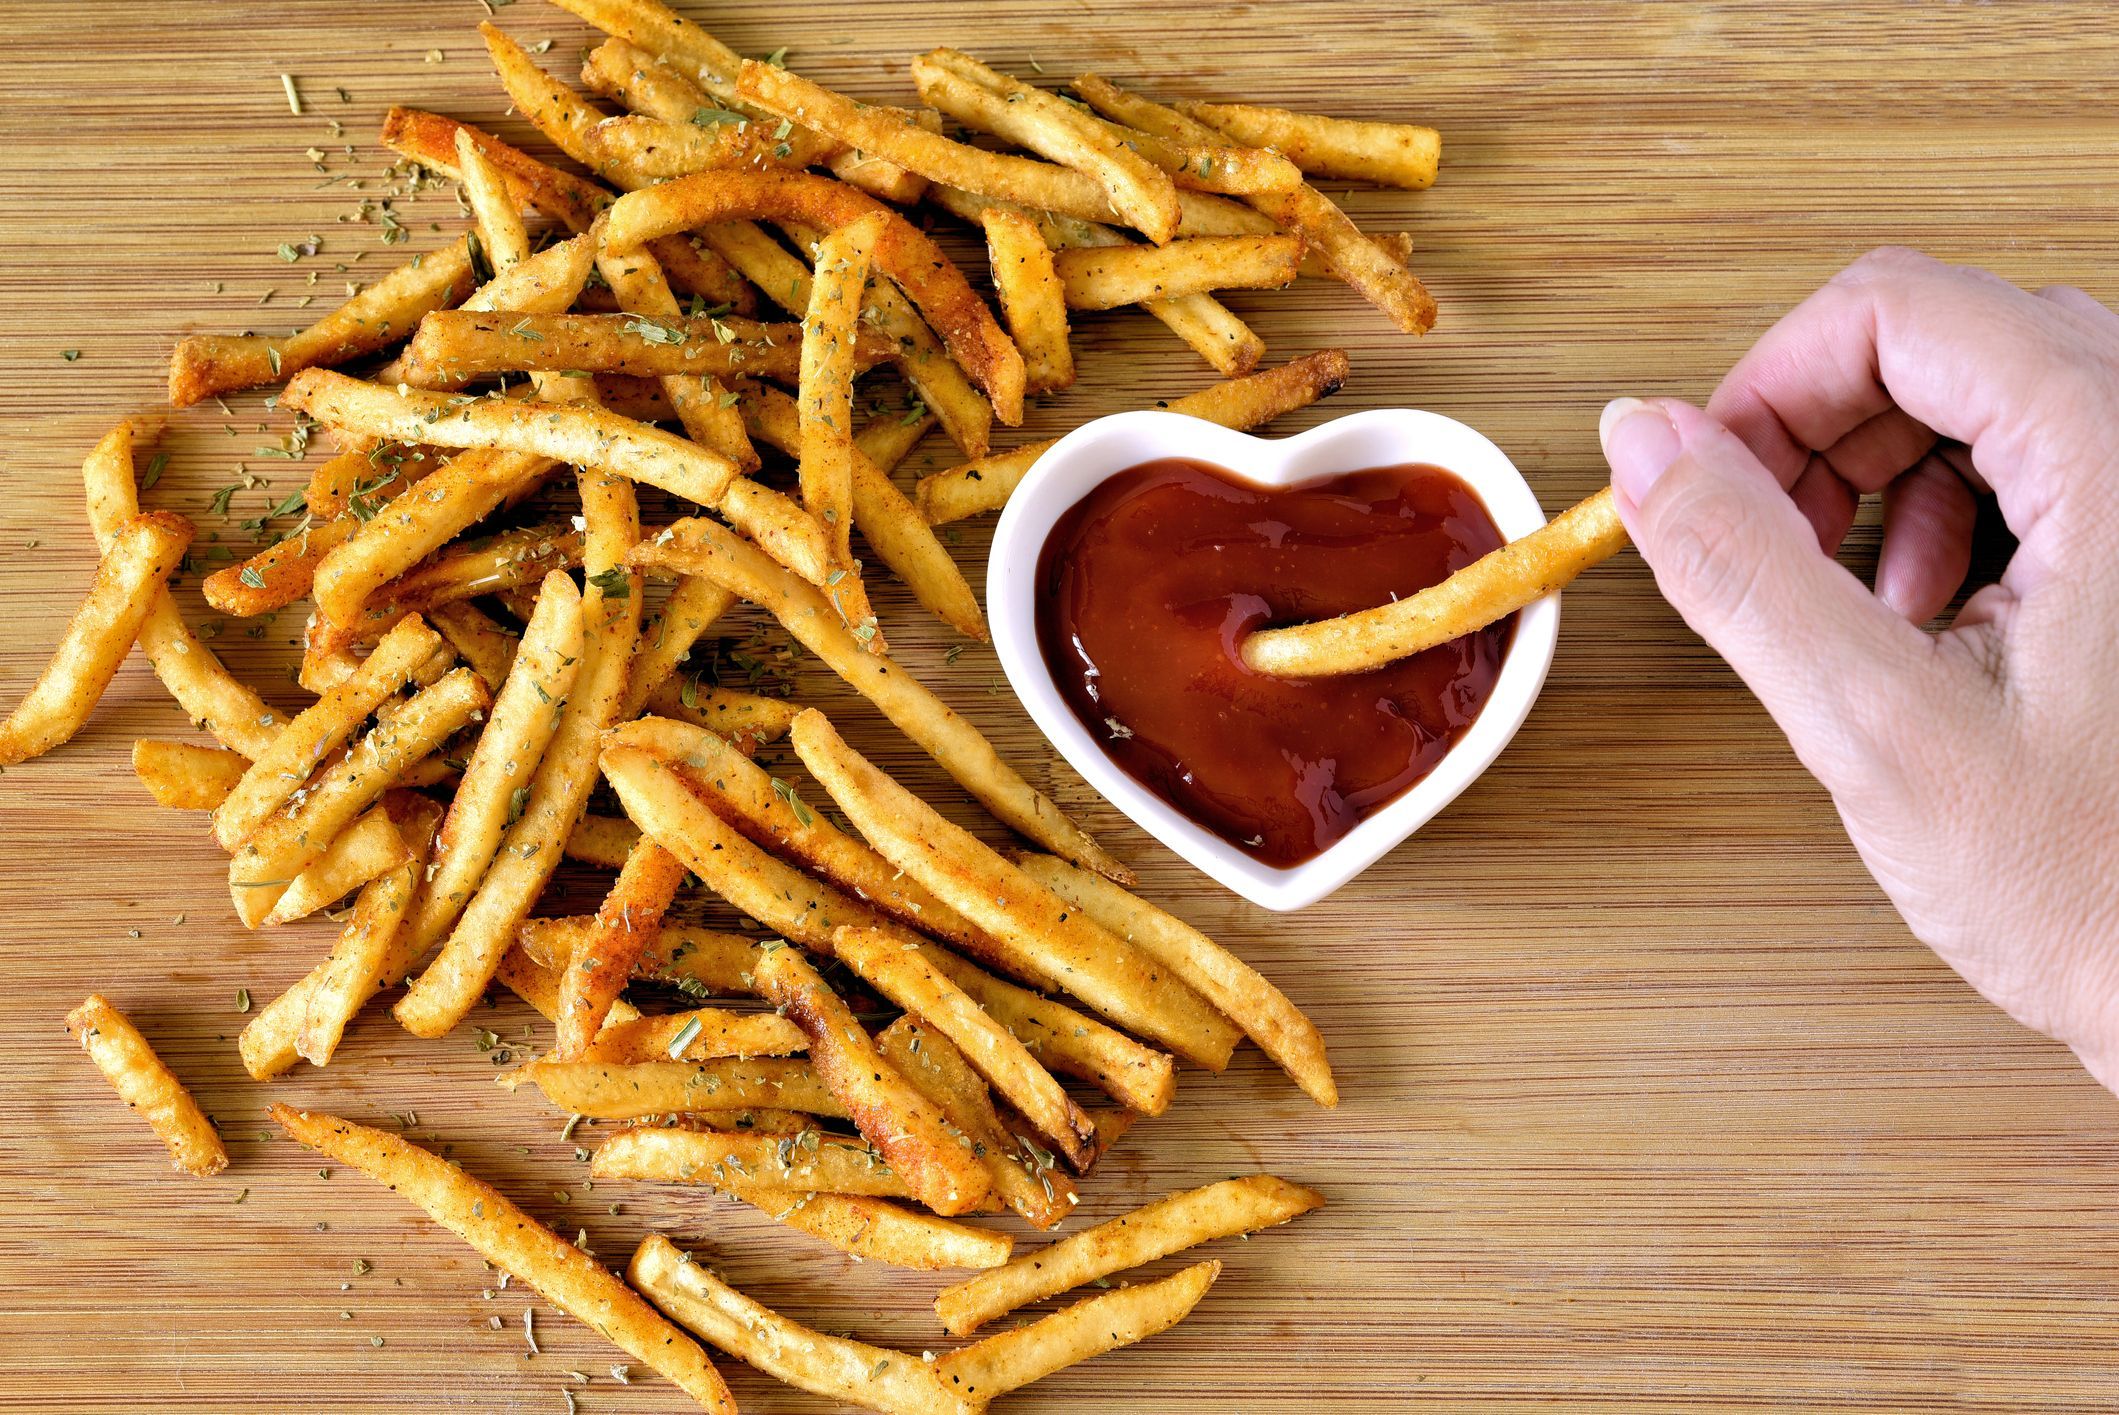 7 Delicious Kinds of Frozen Fries to Buy Right Now